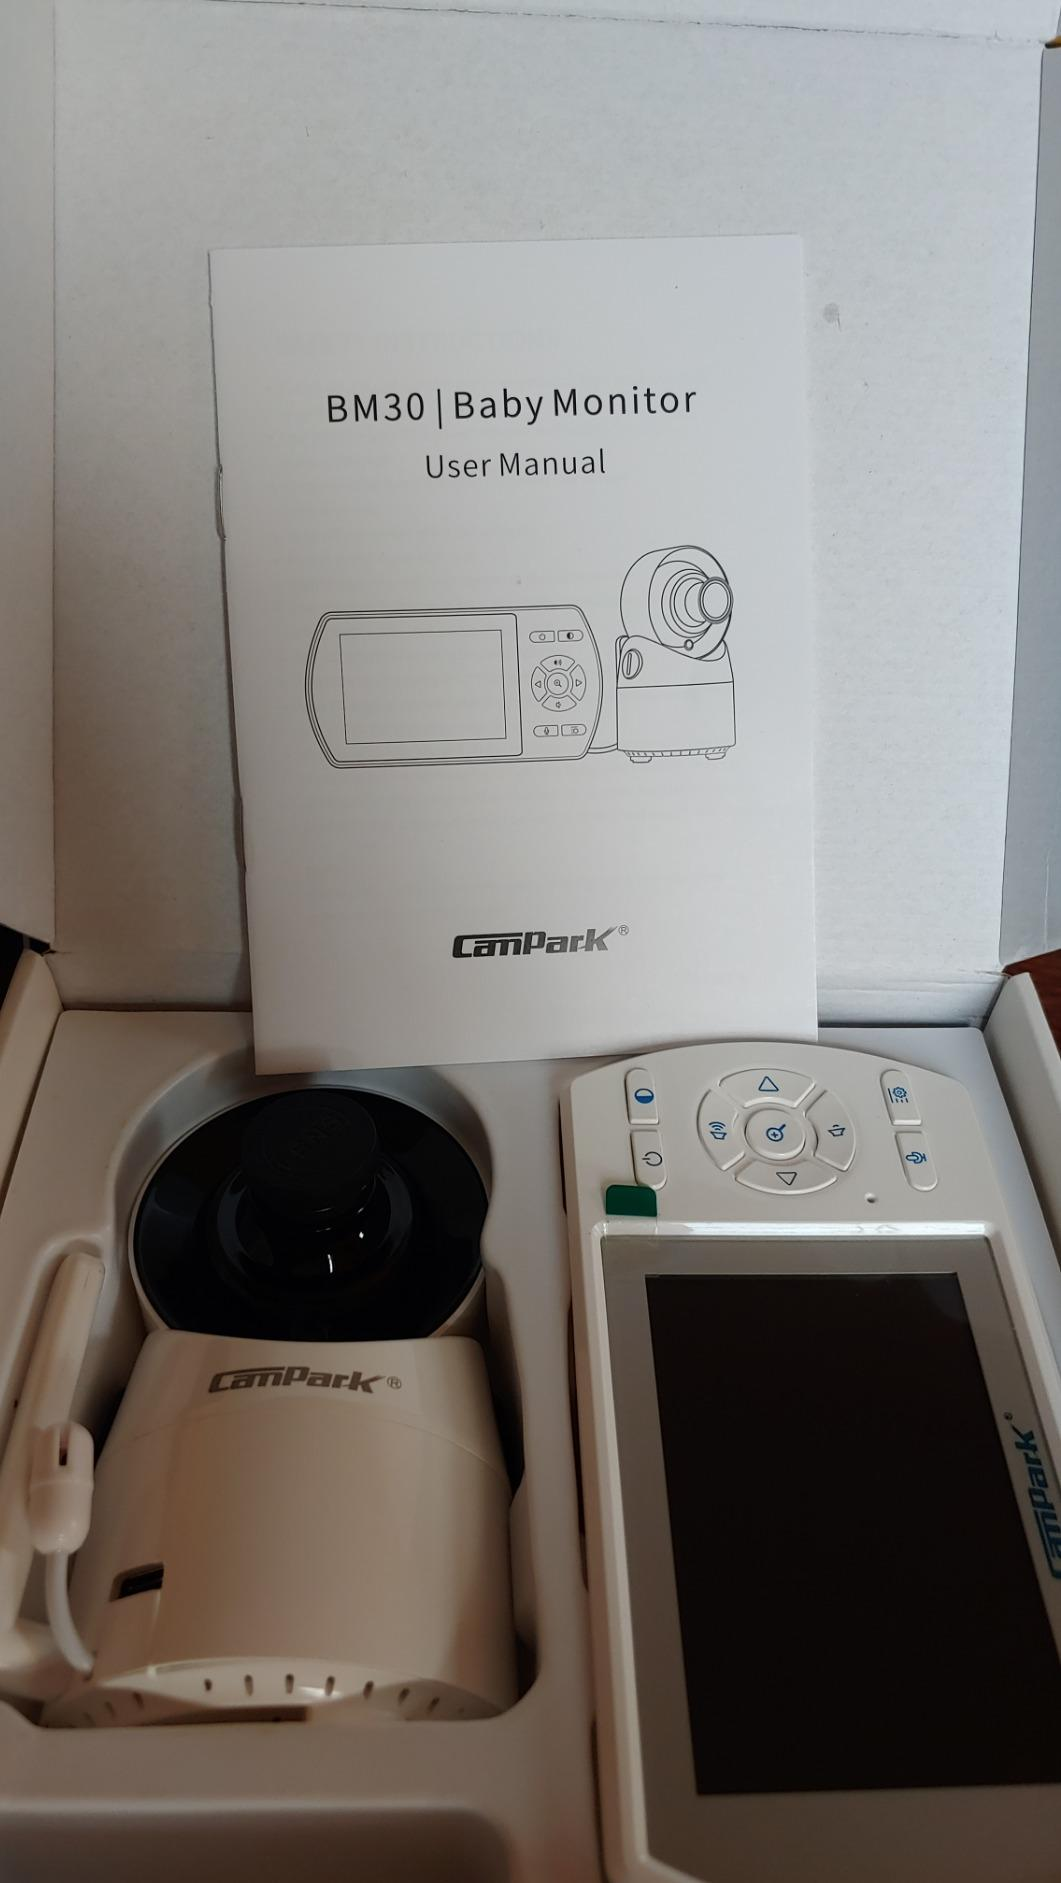 Campark Baby Camera Unit of BM30 Baby Monitor Without Monitor Unit